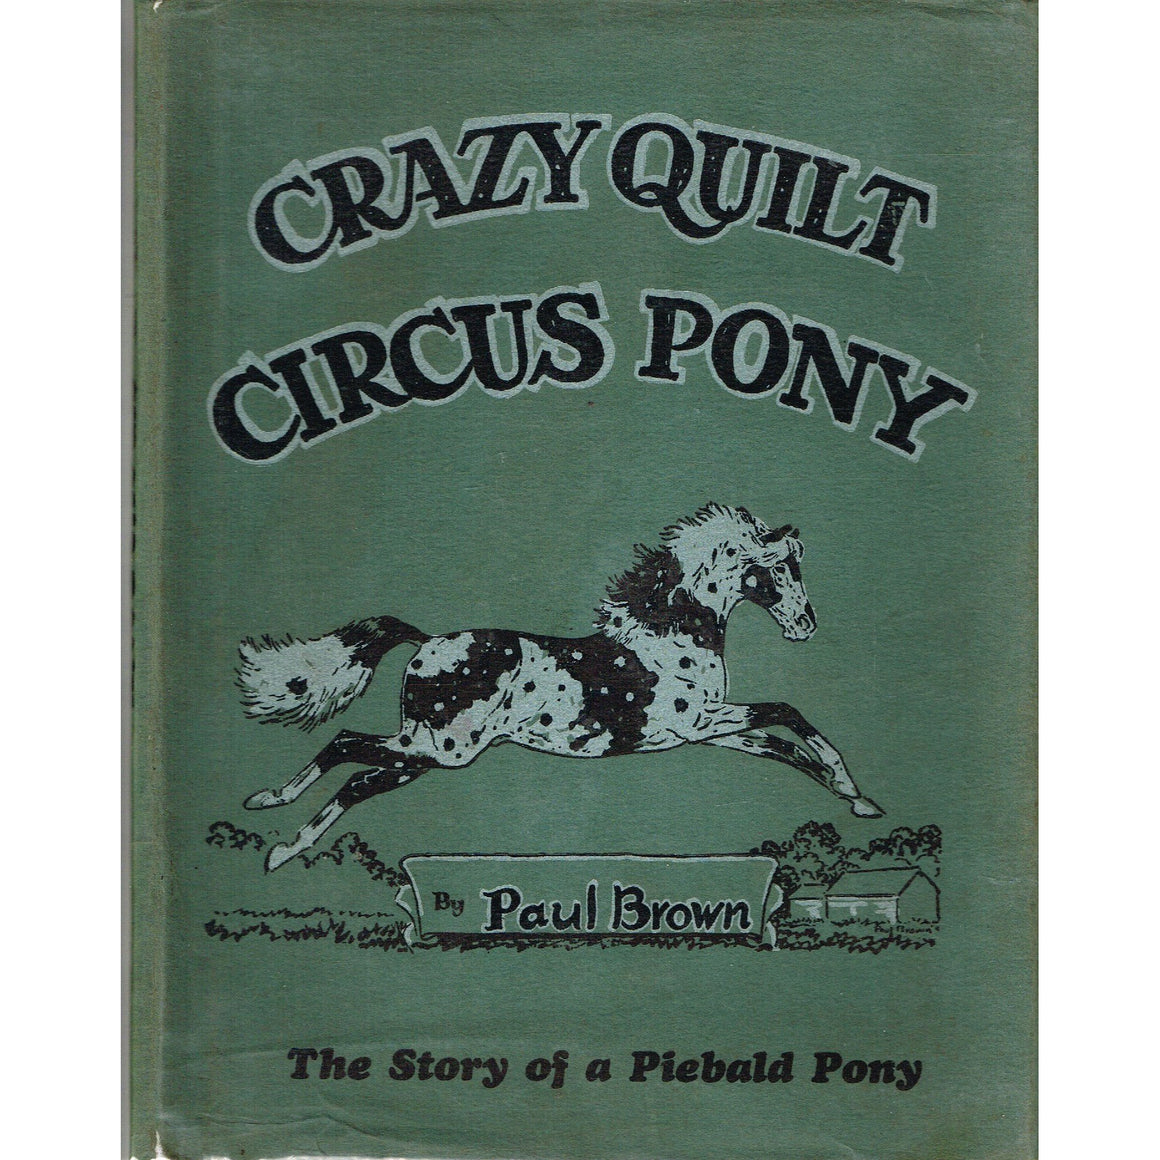 Crazy Quilt Circus Pony: The story of a Piebald Pony